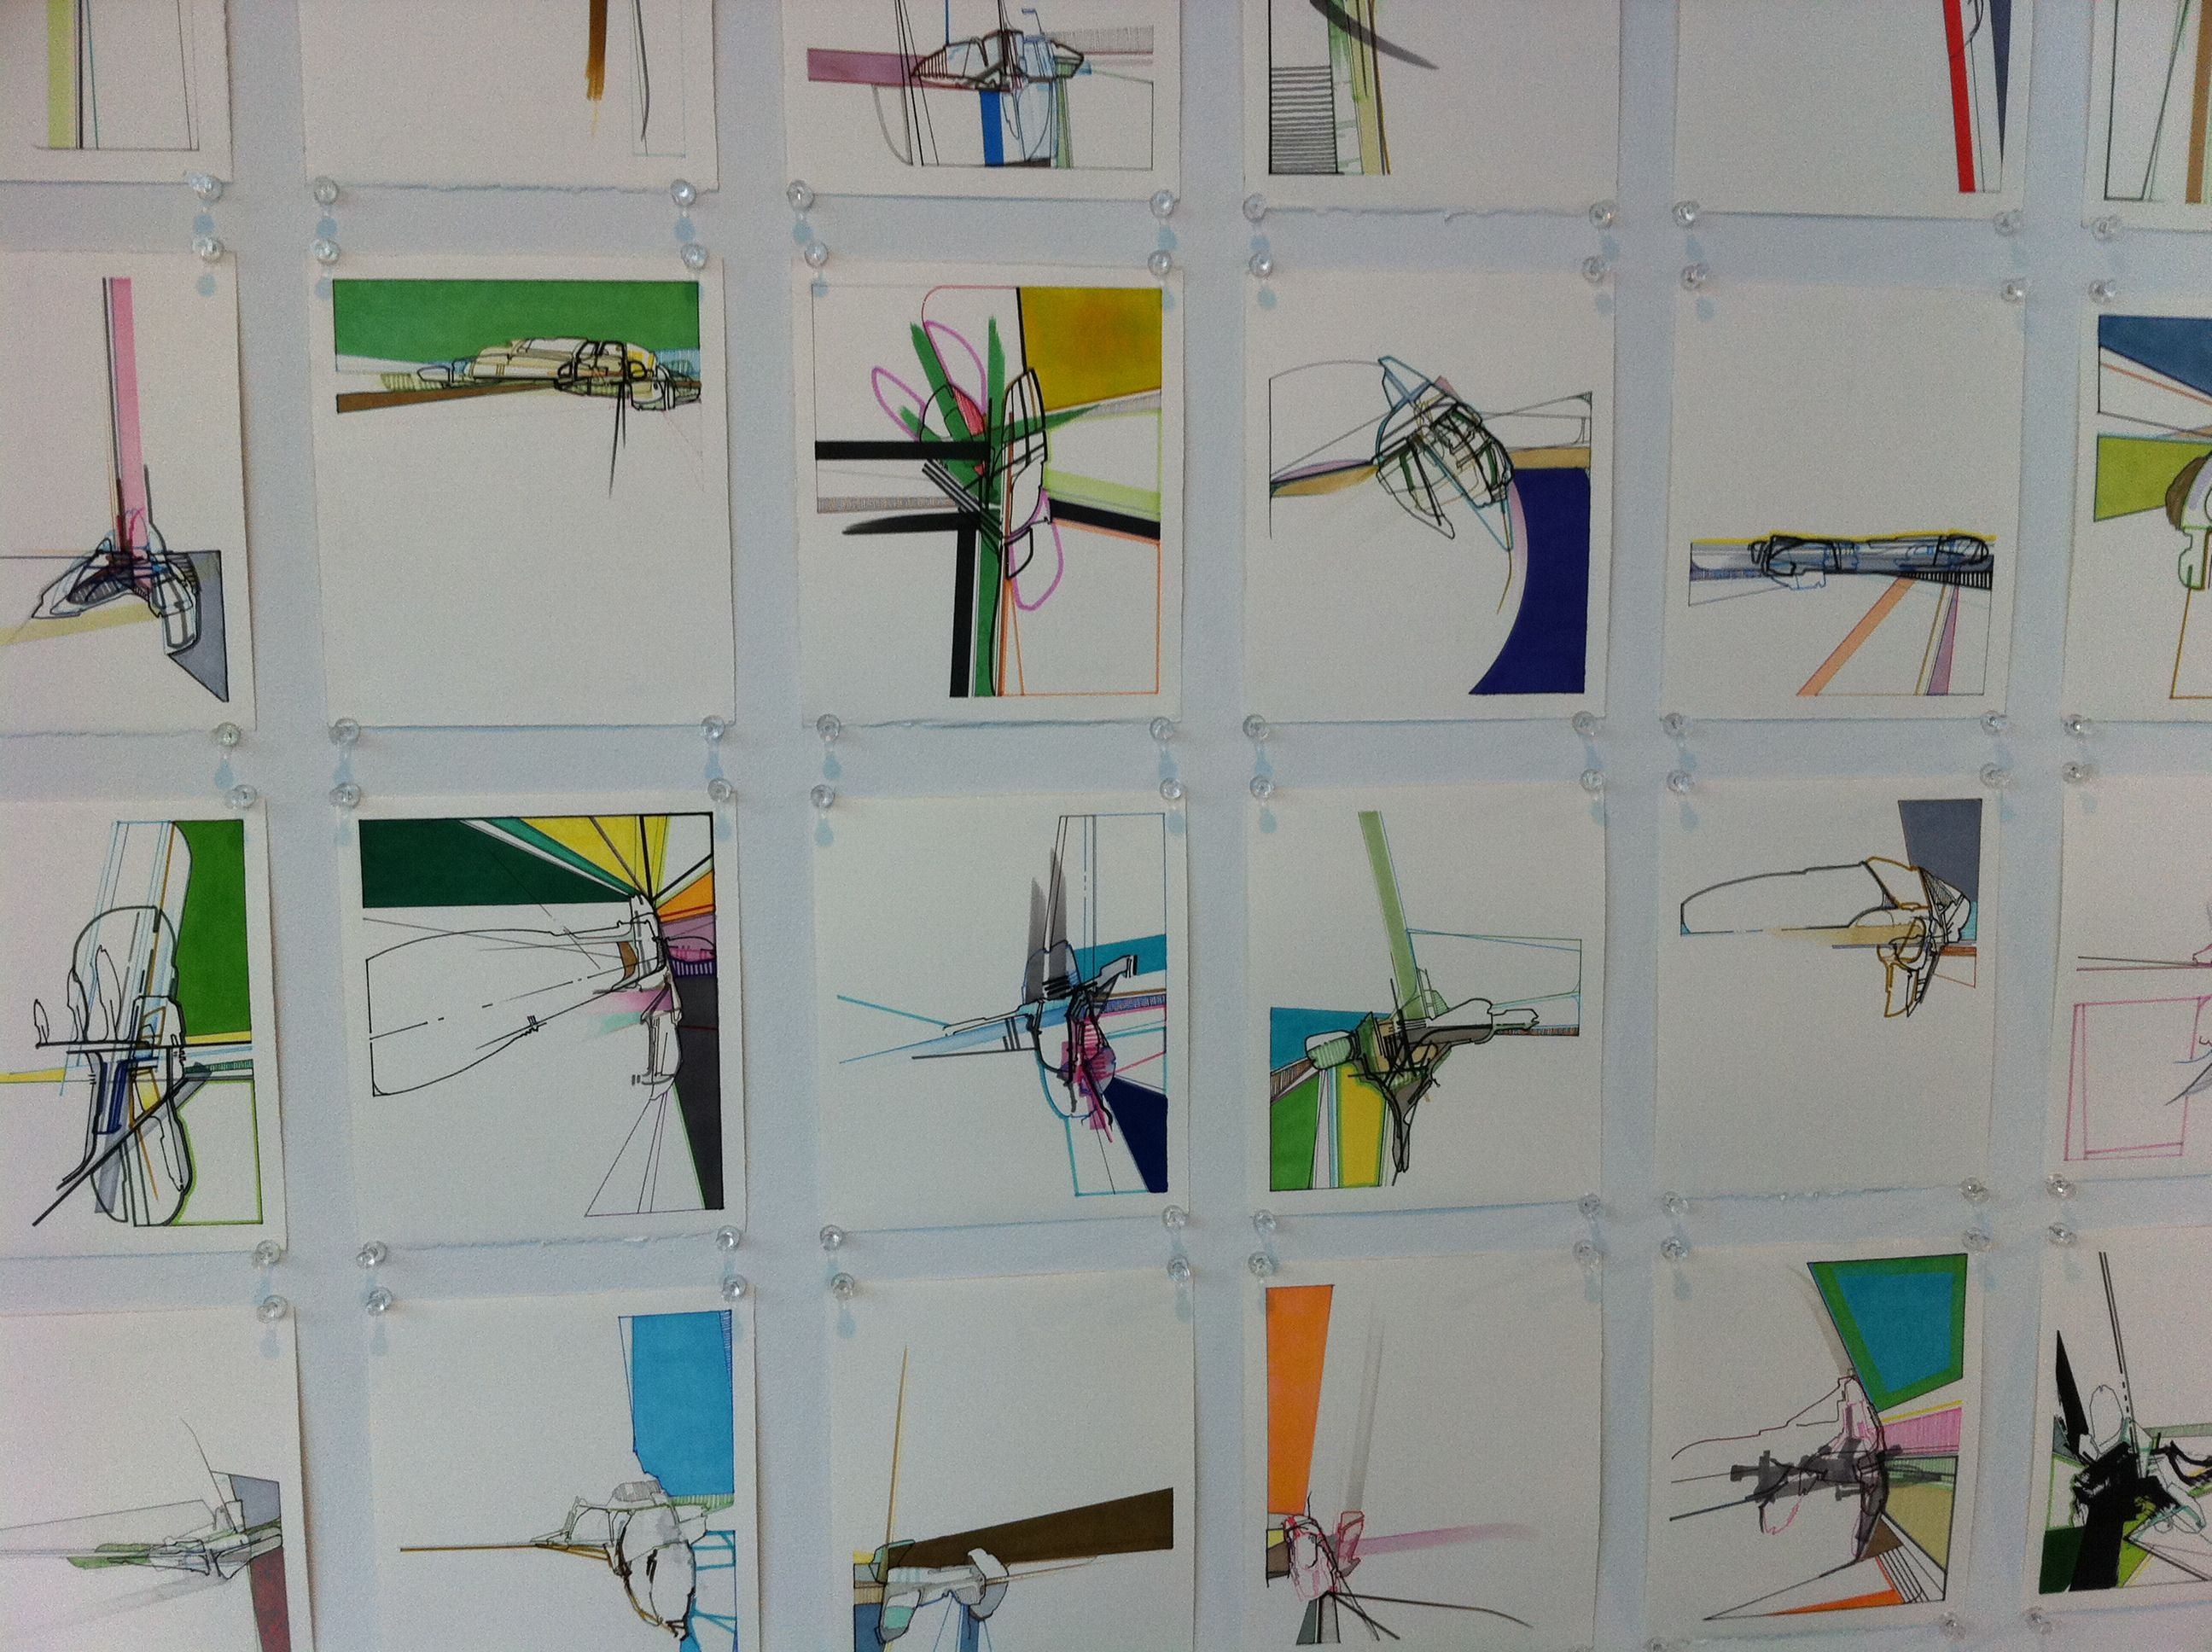 Nick Lamia abstract drawings - consistency in a body of work